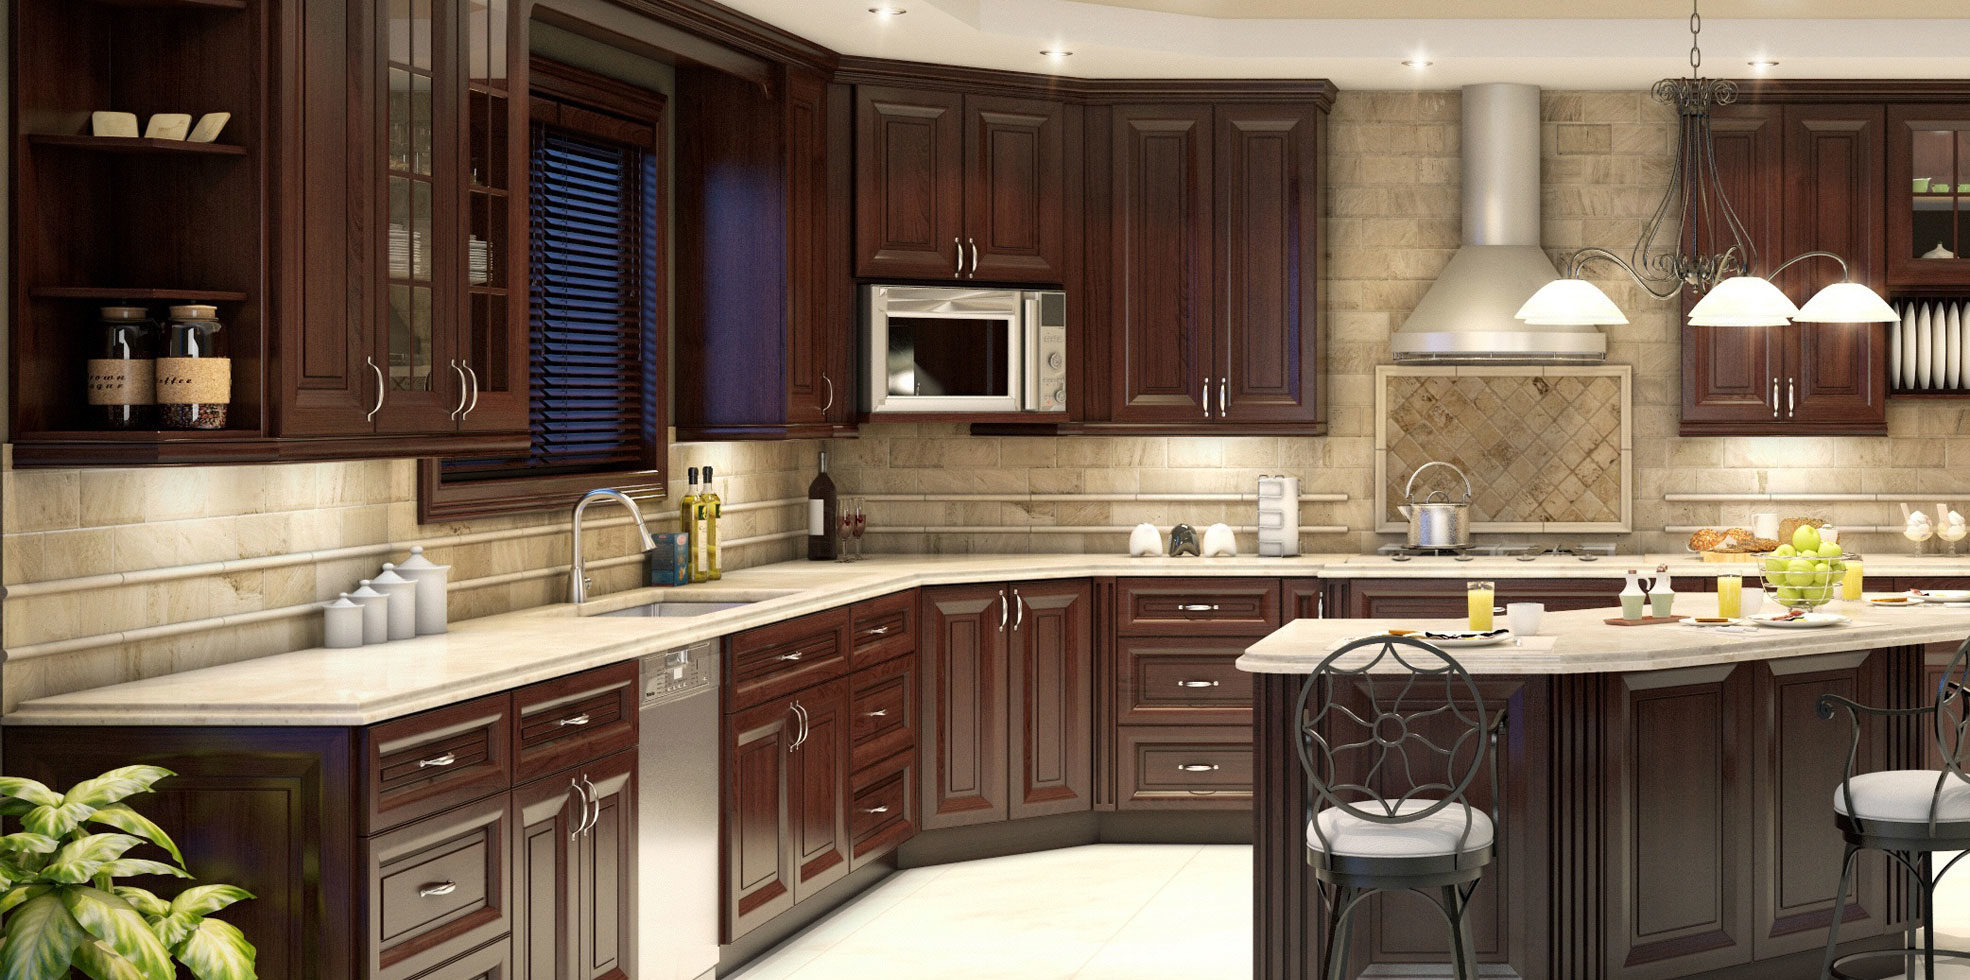 Assembled Kitchen Cabinets For Sale - Modern Rta Cabinets